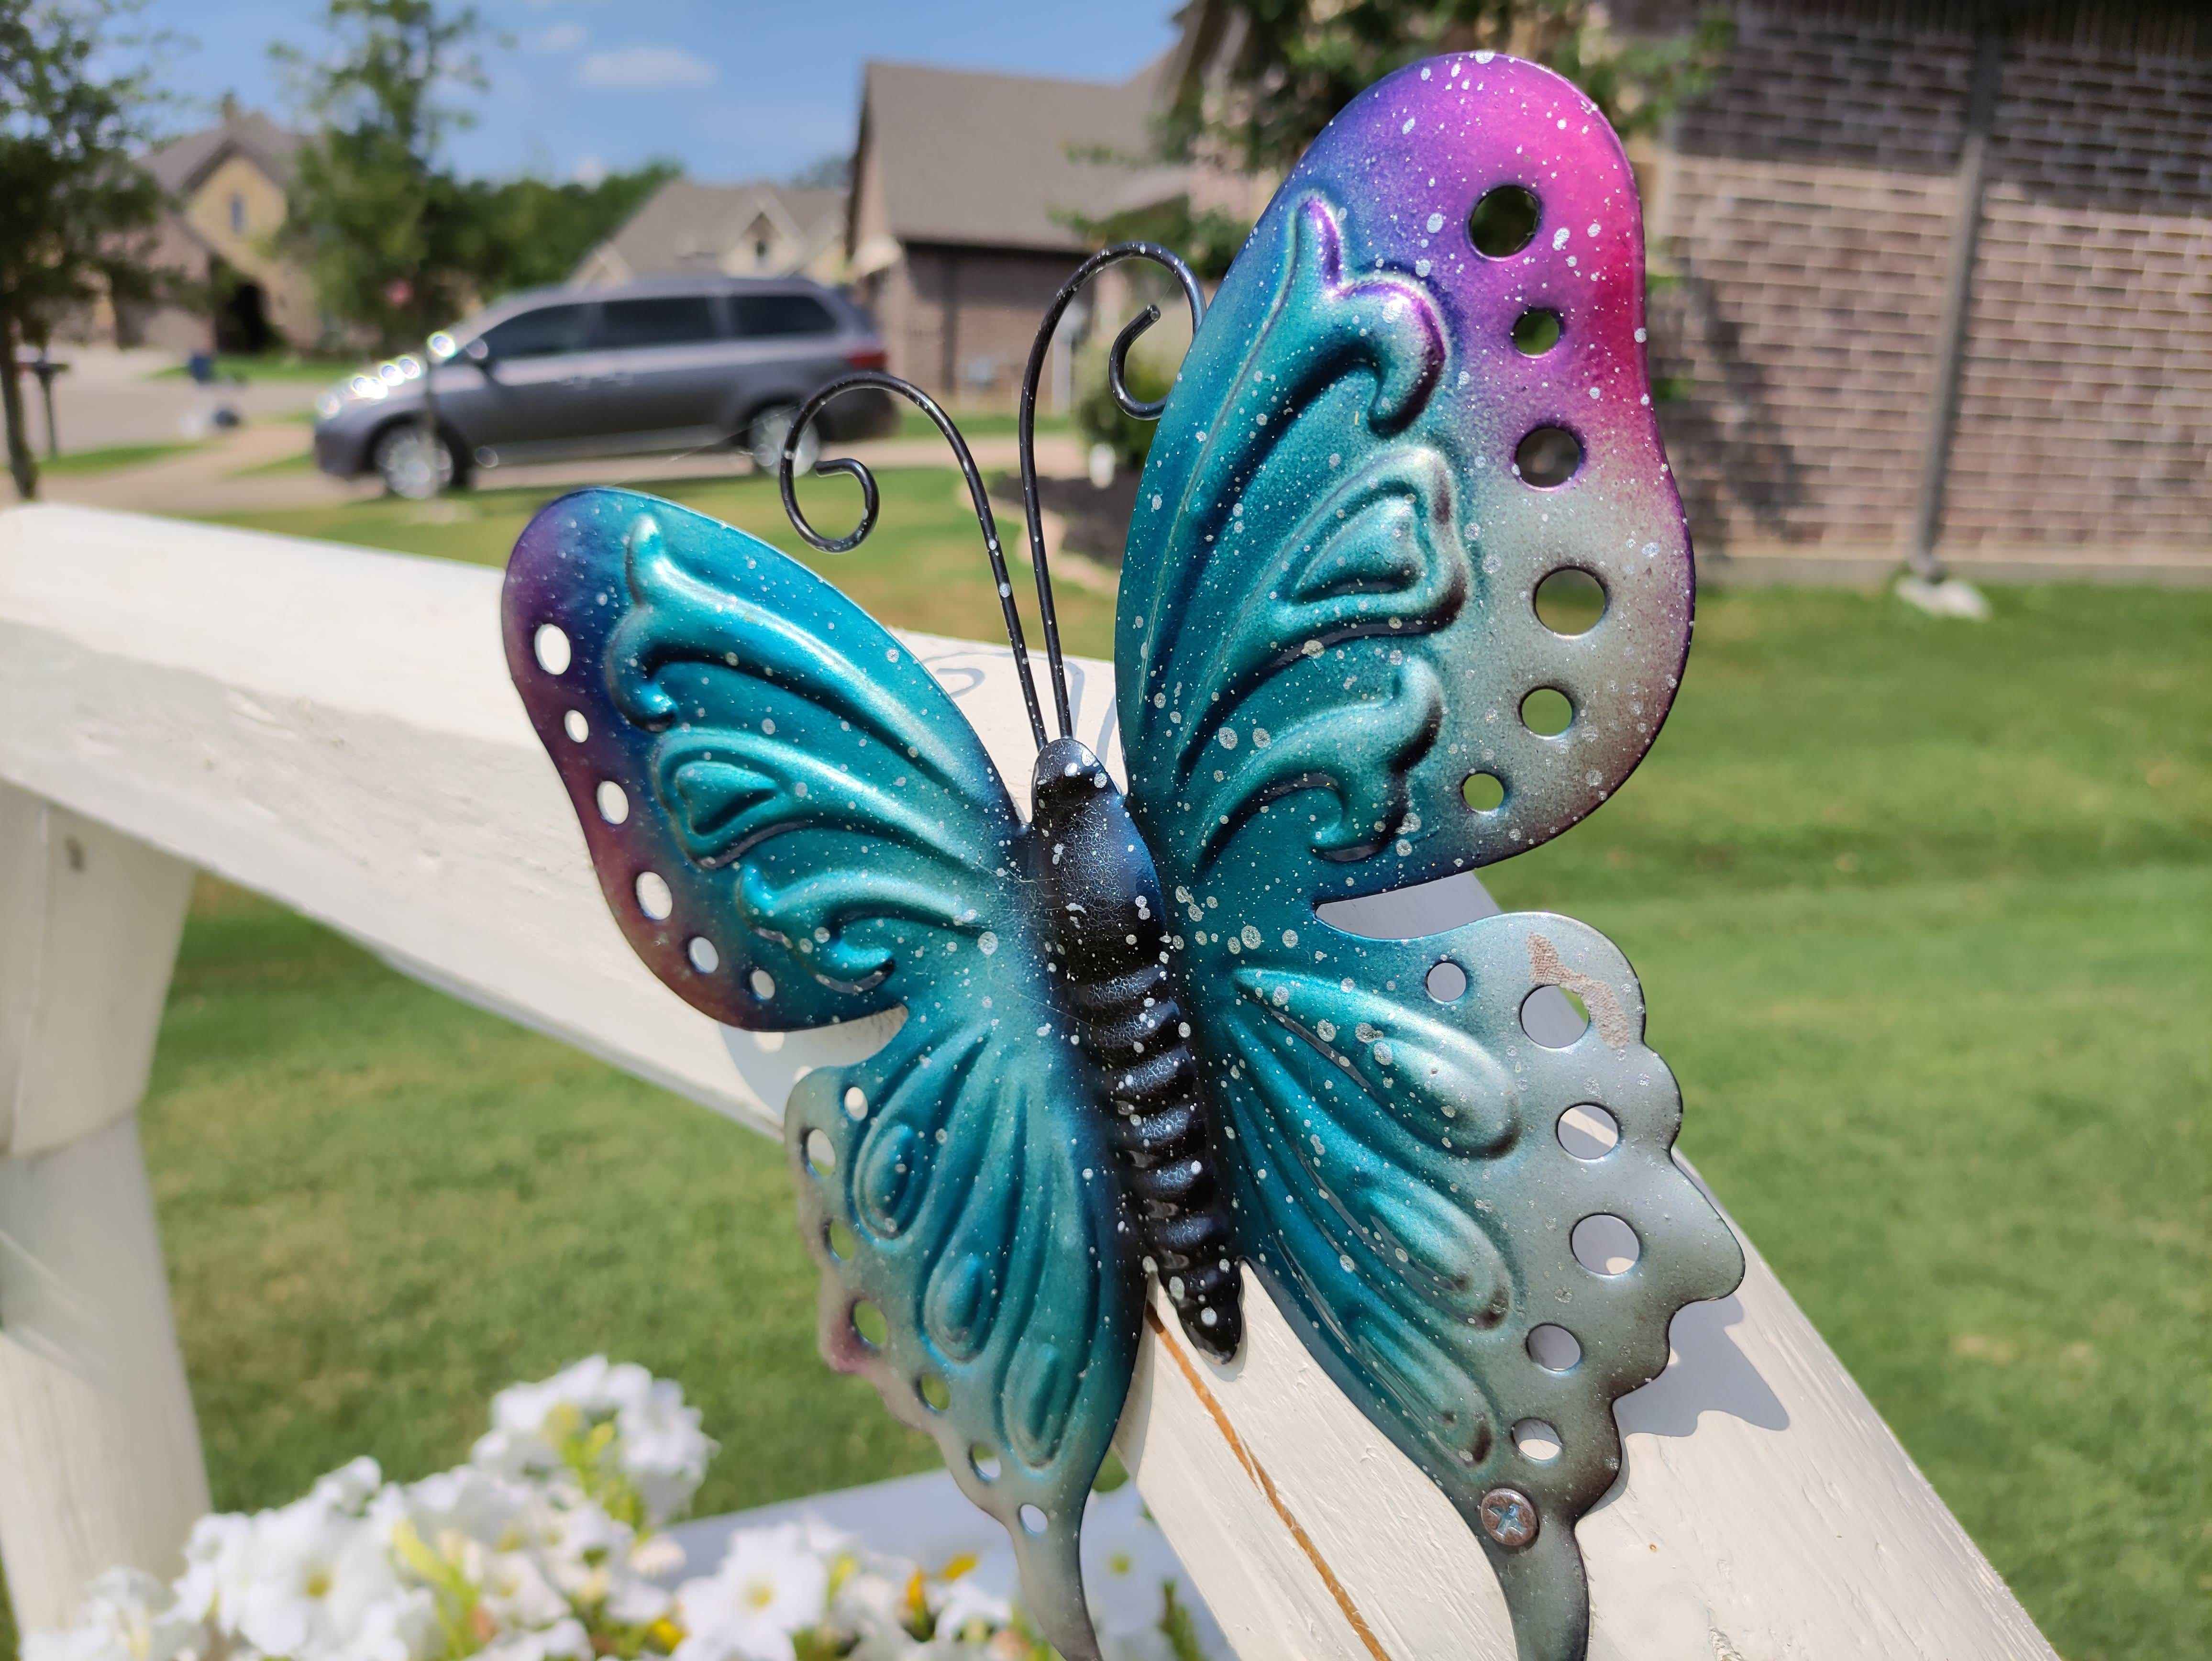 A camera sample with the Red Magic 6R. A colorful metal butterfly.